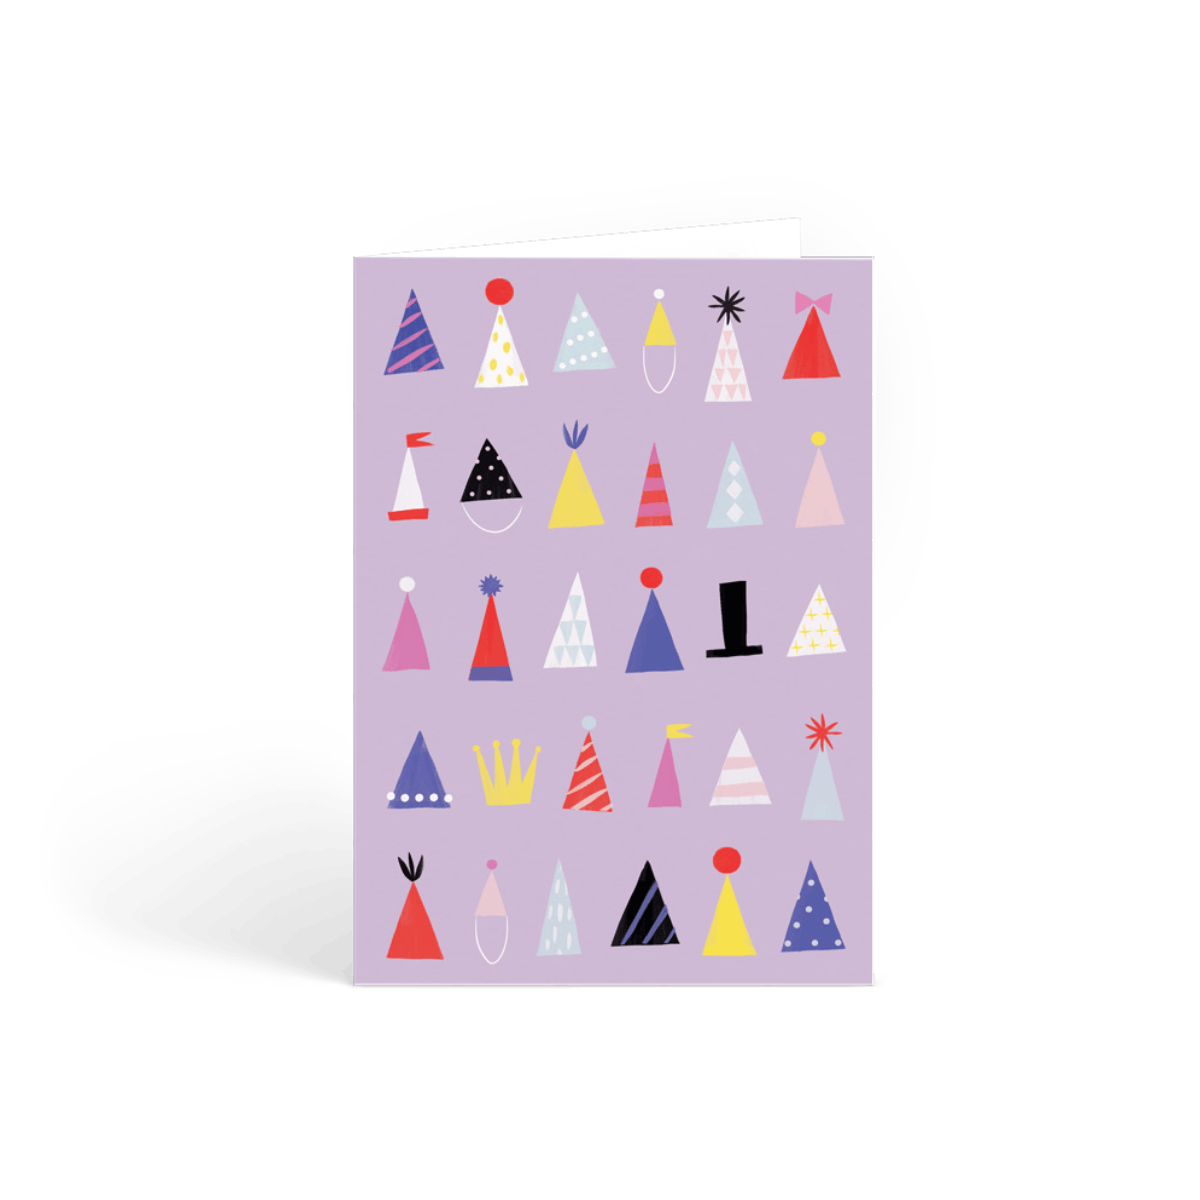 Https%3a%2f%2fwww.papier.com%2fproduct image%2f4801%2f2%2fparty hats 1244 front 1457608896.png?ixlib=rb 1.1